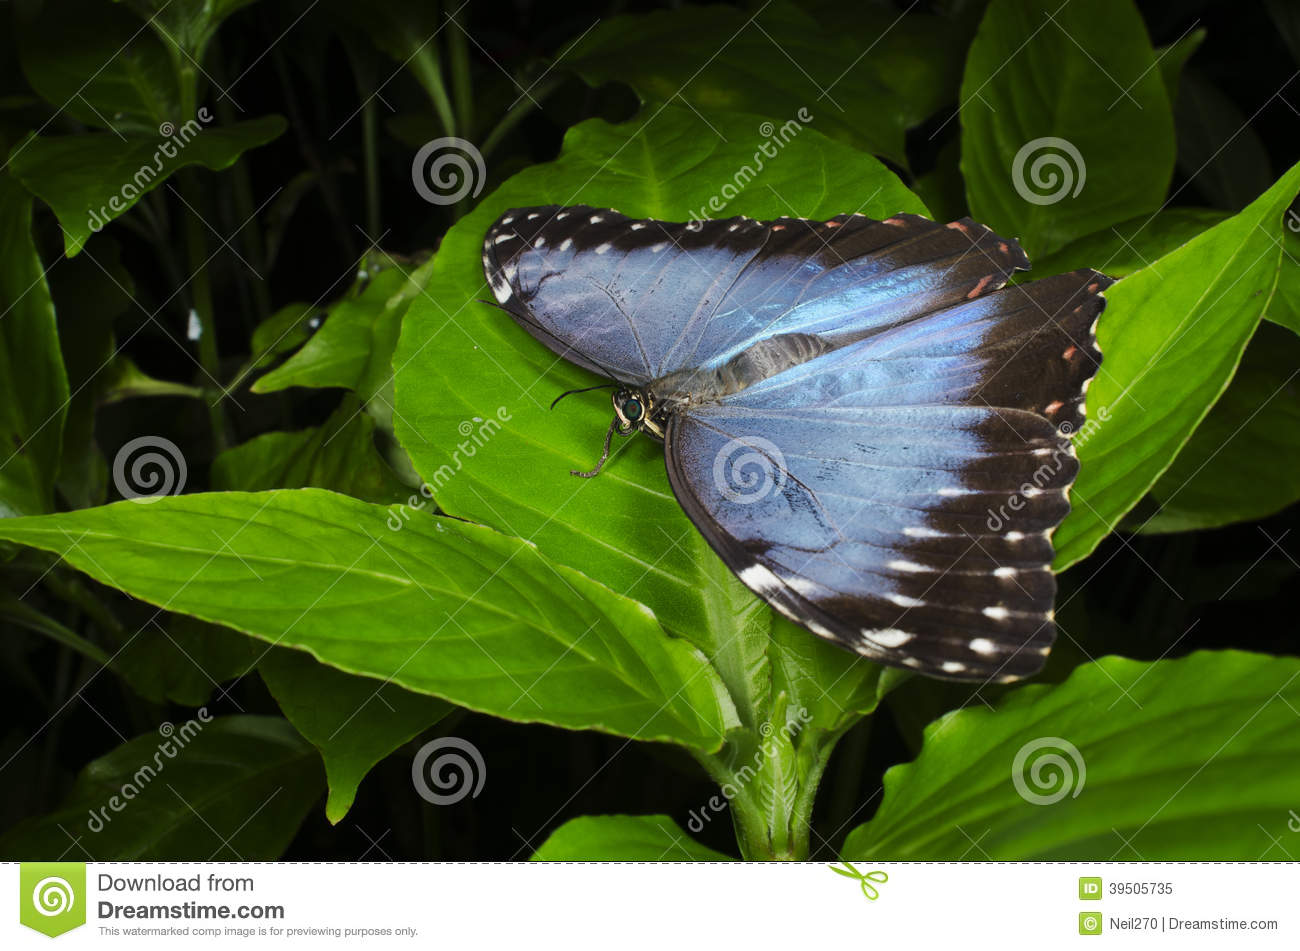 Blue Morpho perched on leaf